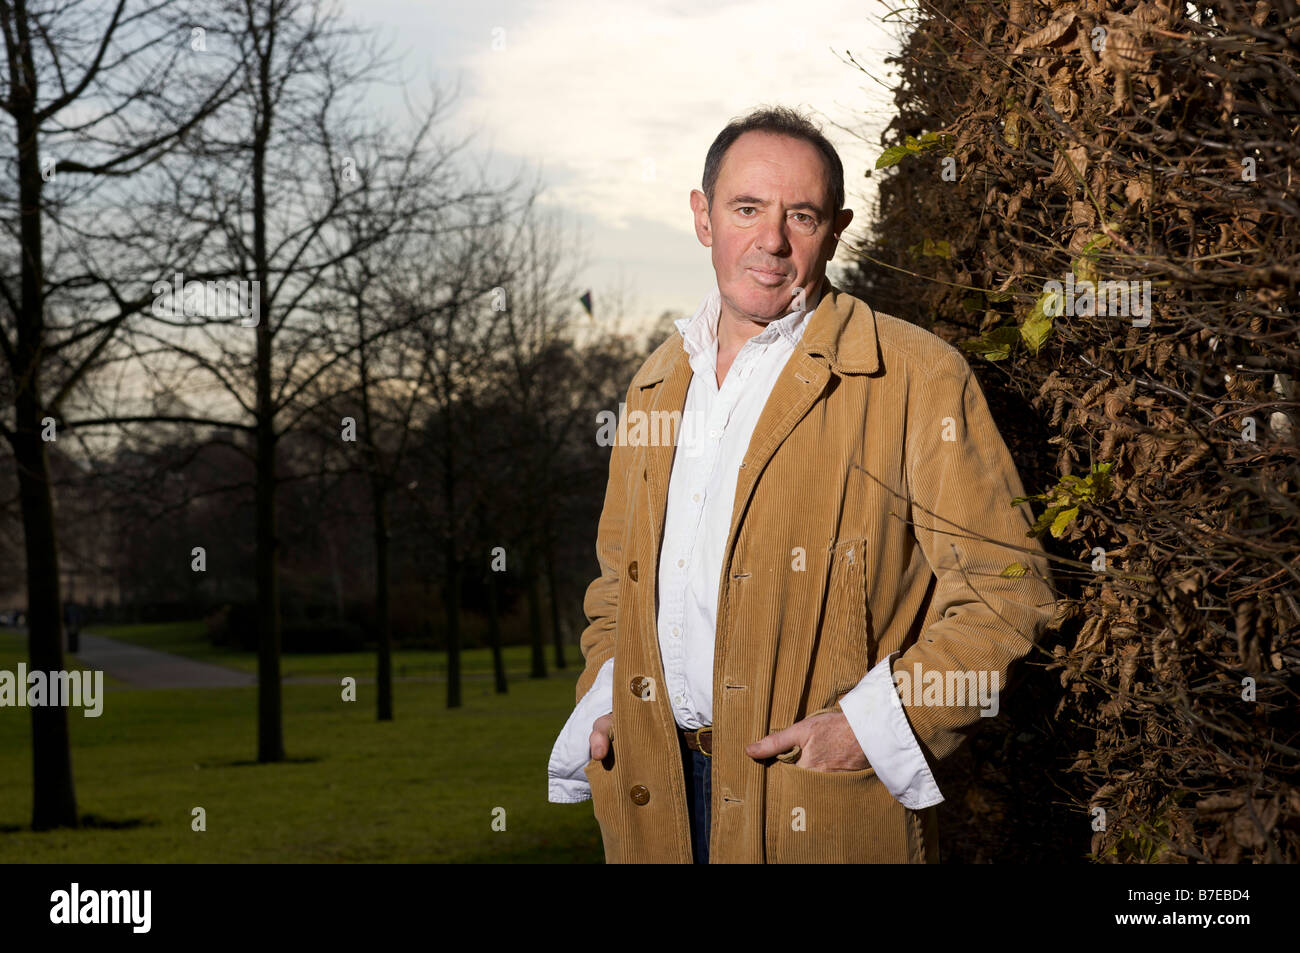 Author eco campaigner and documentary maker Nick Rosen - Stock Image